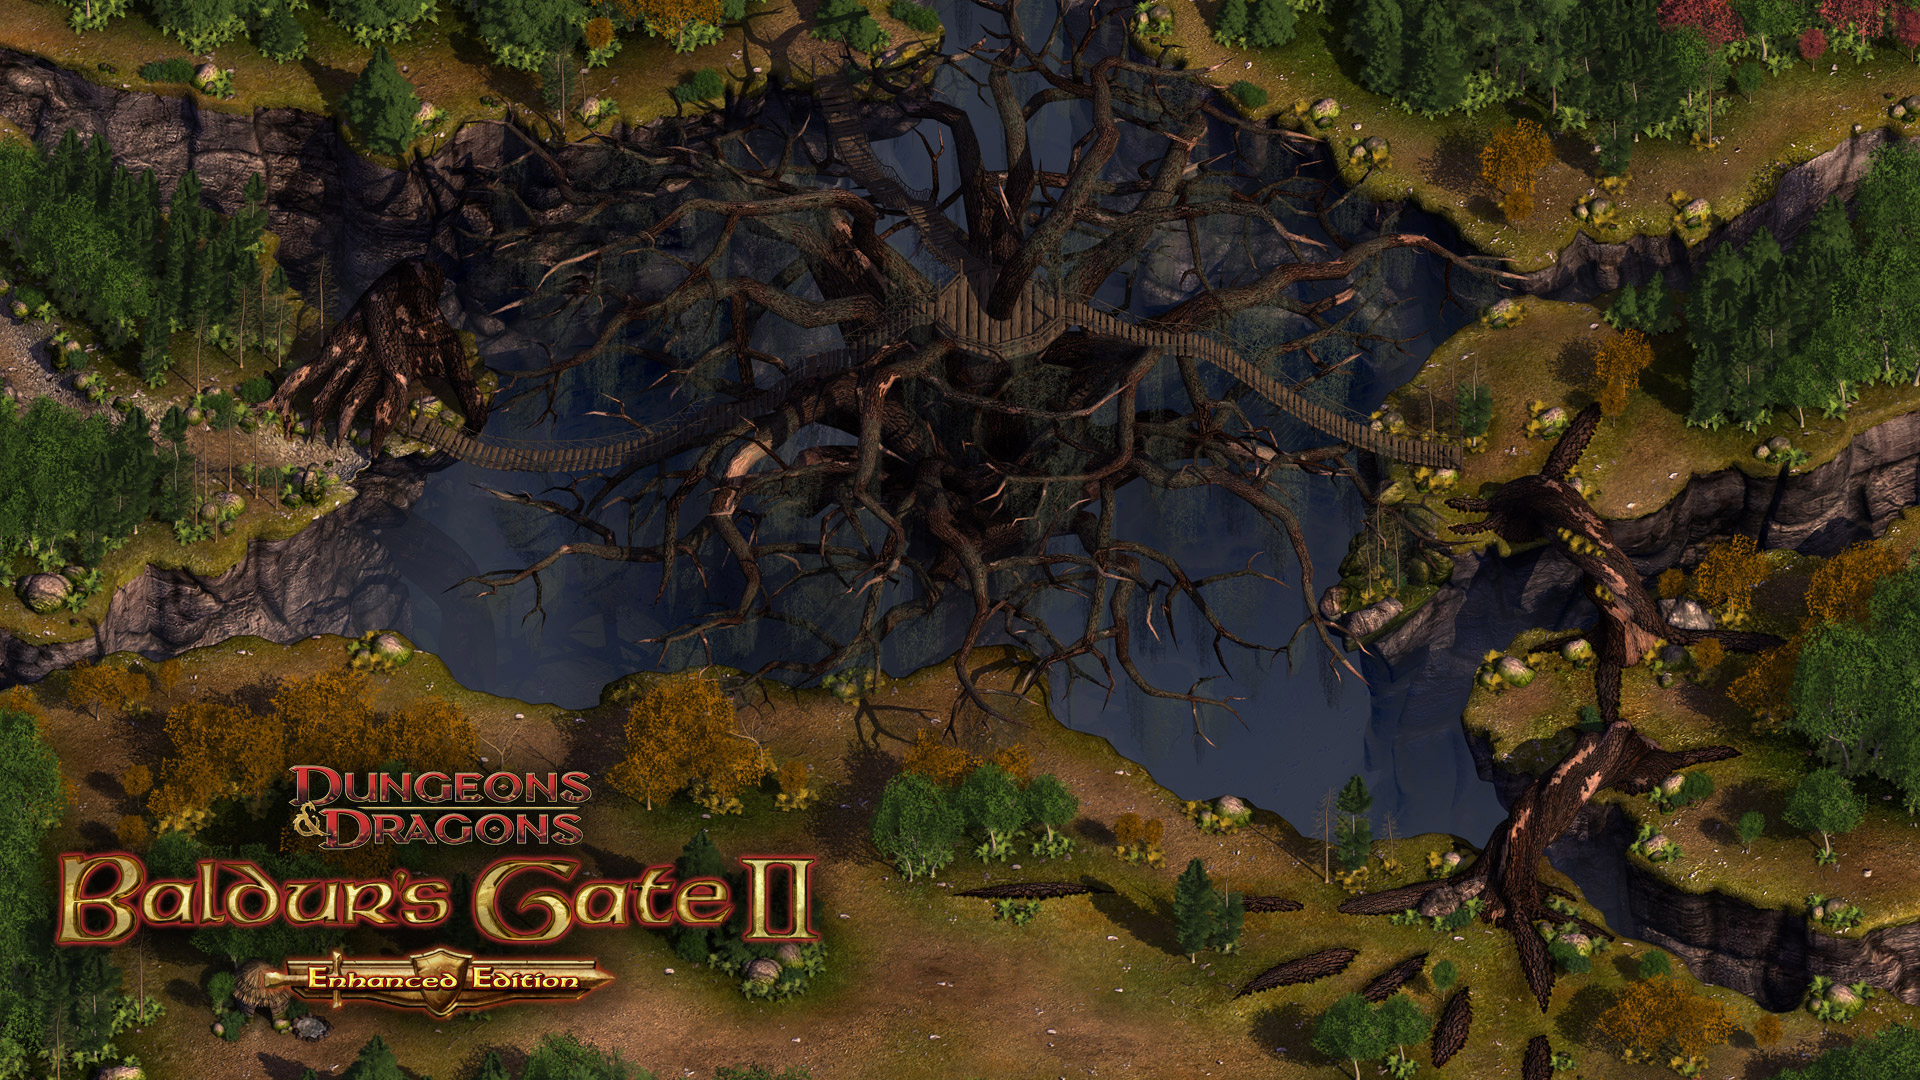 Free Baldur's Gate II Wallpaper in 1920x1080